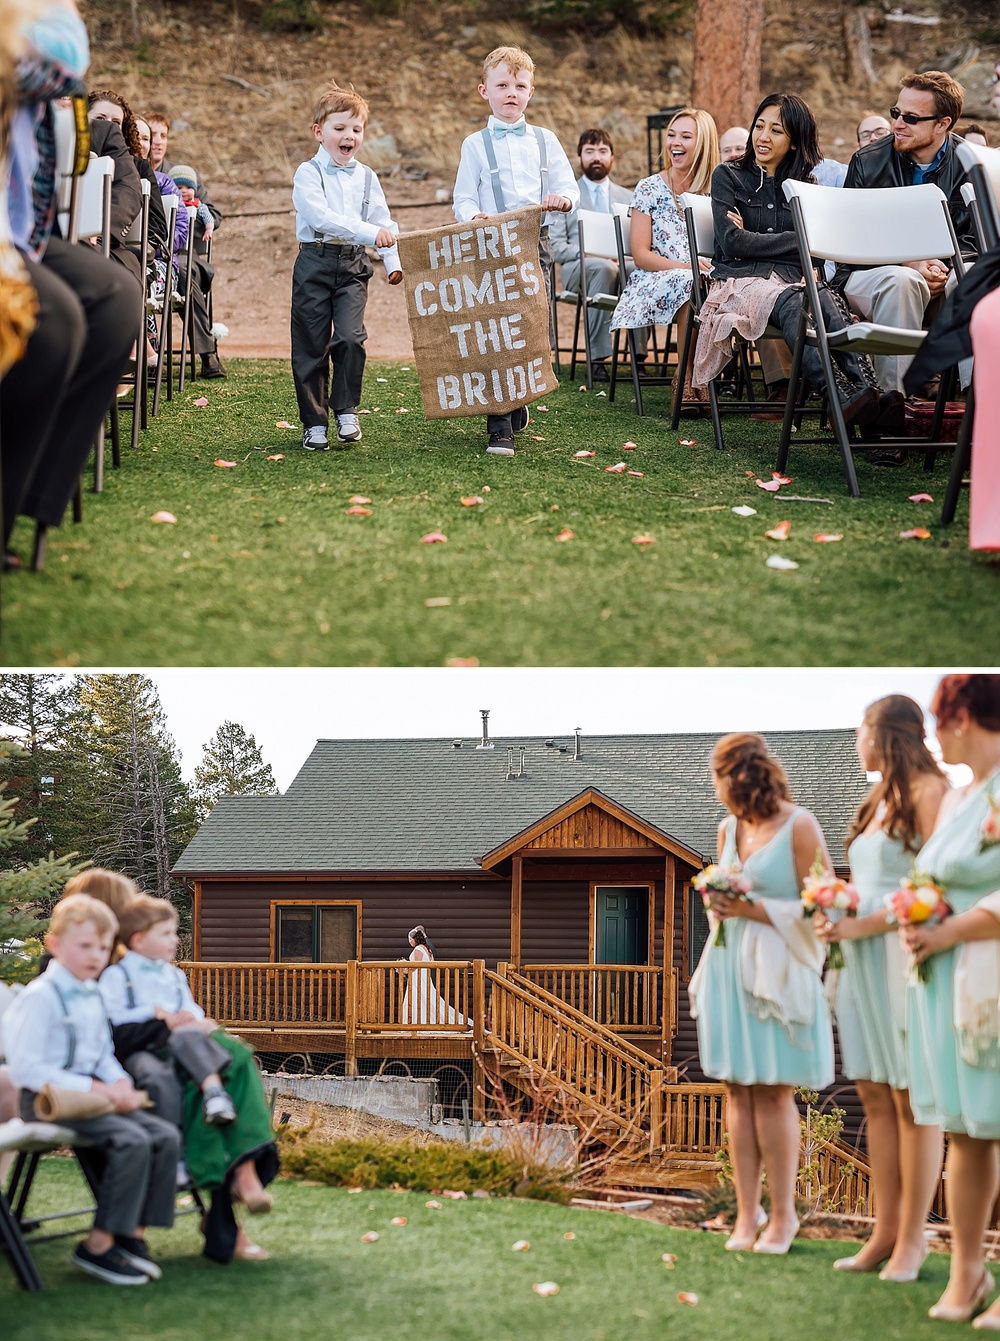 "What a cute idea! Having younger relatives walk down the aisle with a ""here comes the bride"" sign. Mary's Lake Lodge in Estes Park, Colorado would be the perfect place for such a fun mountain wedding! Photo by Maddie Mae Photography"